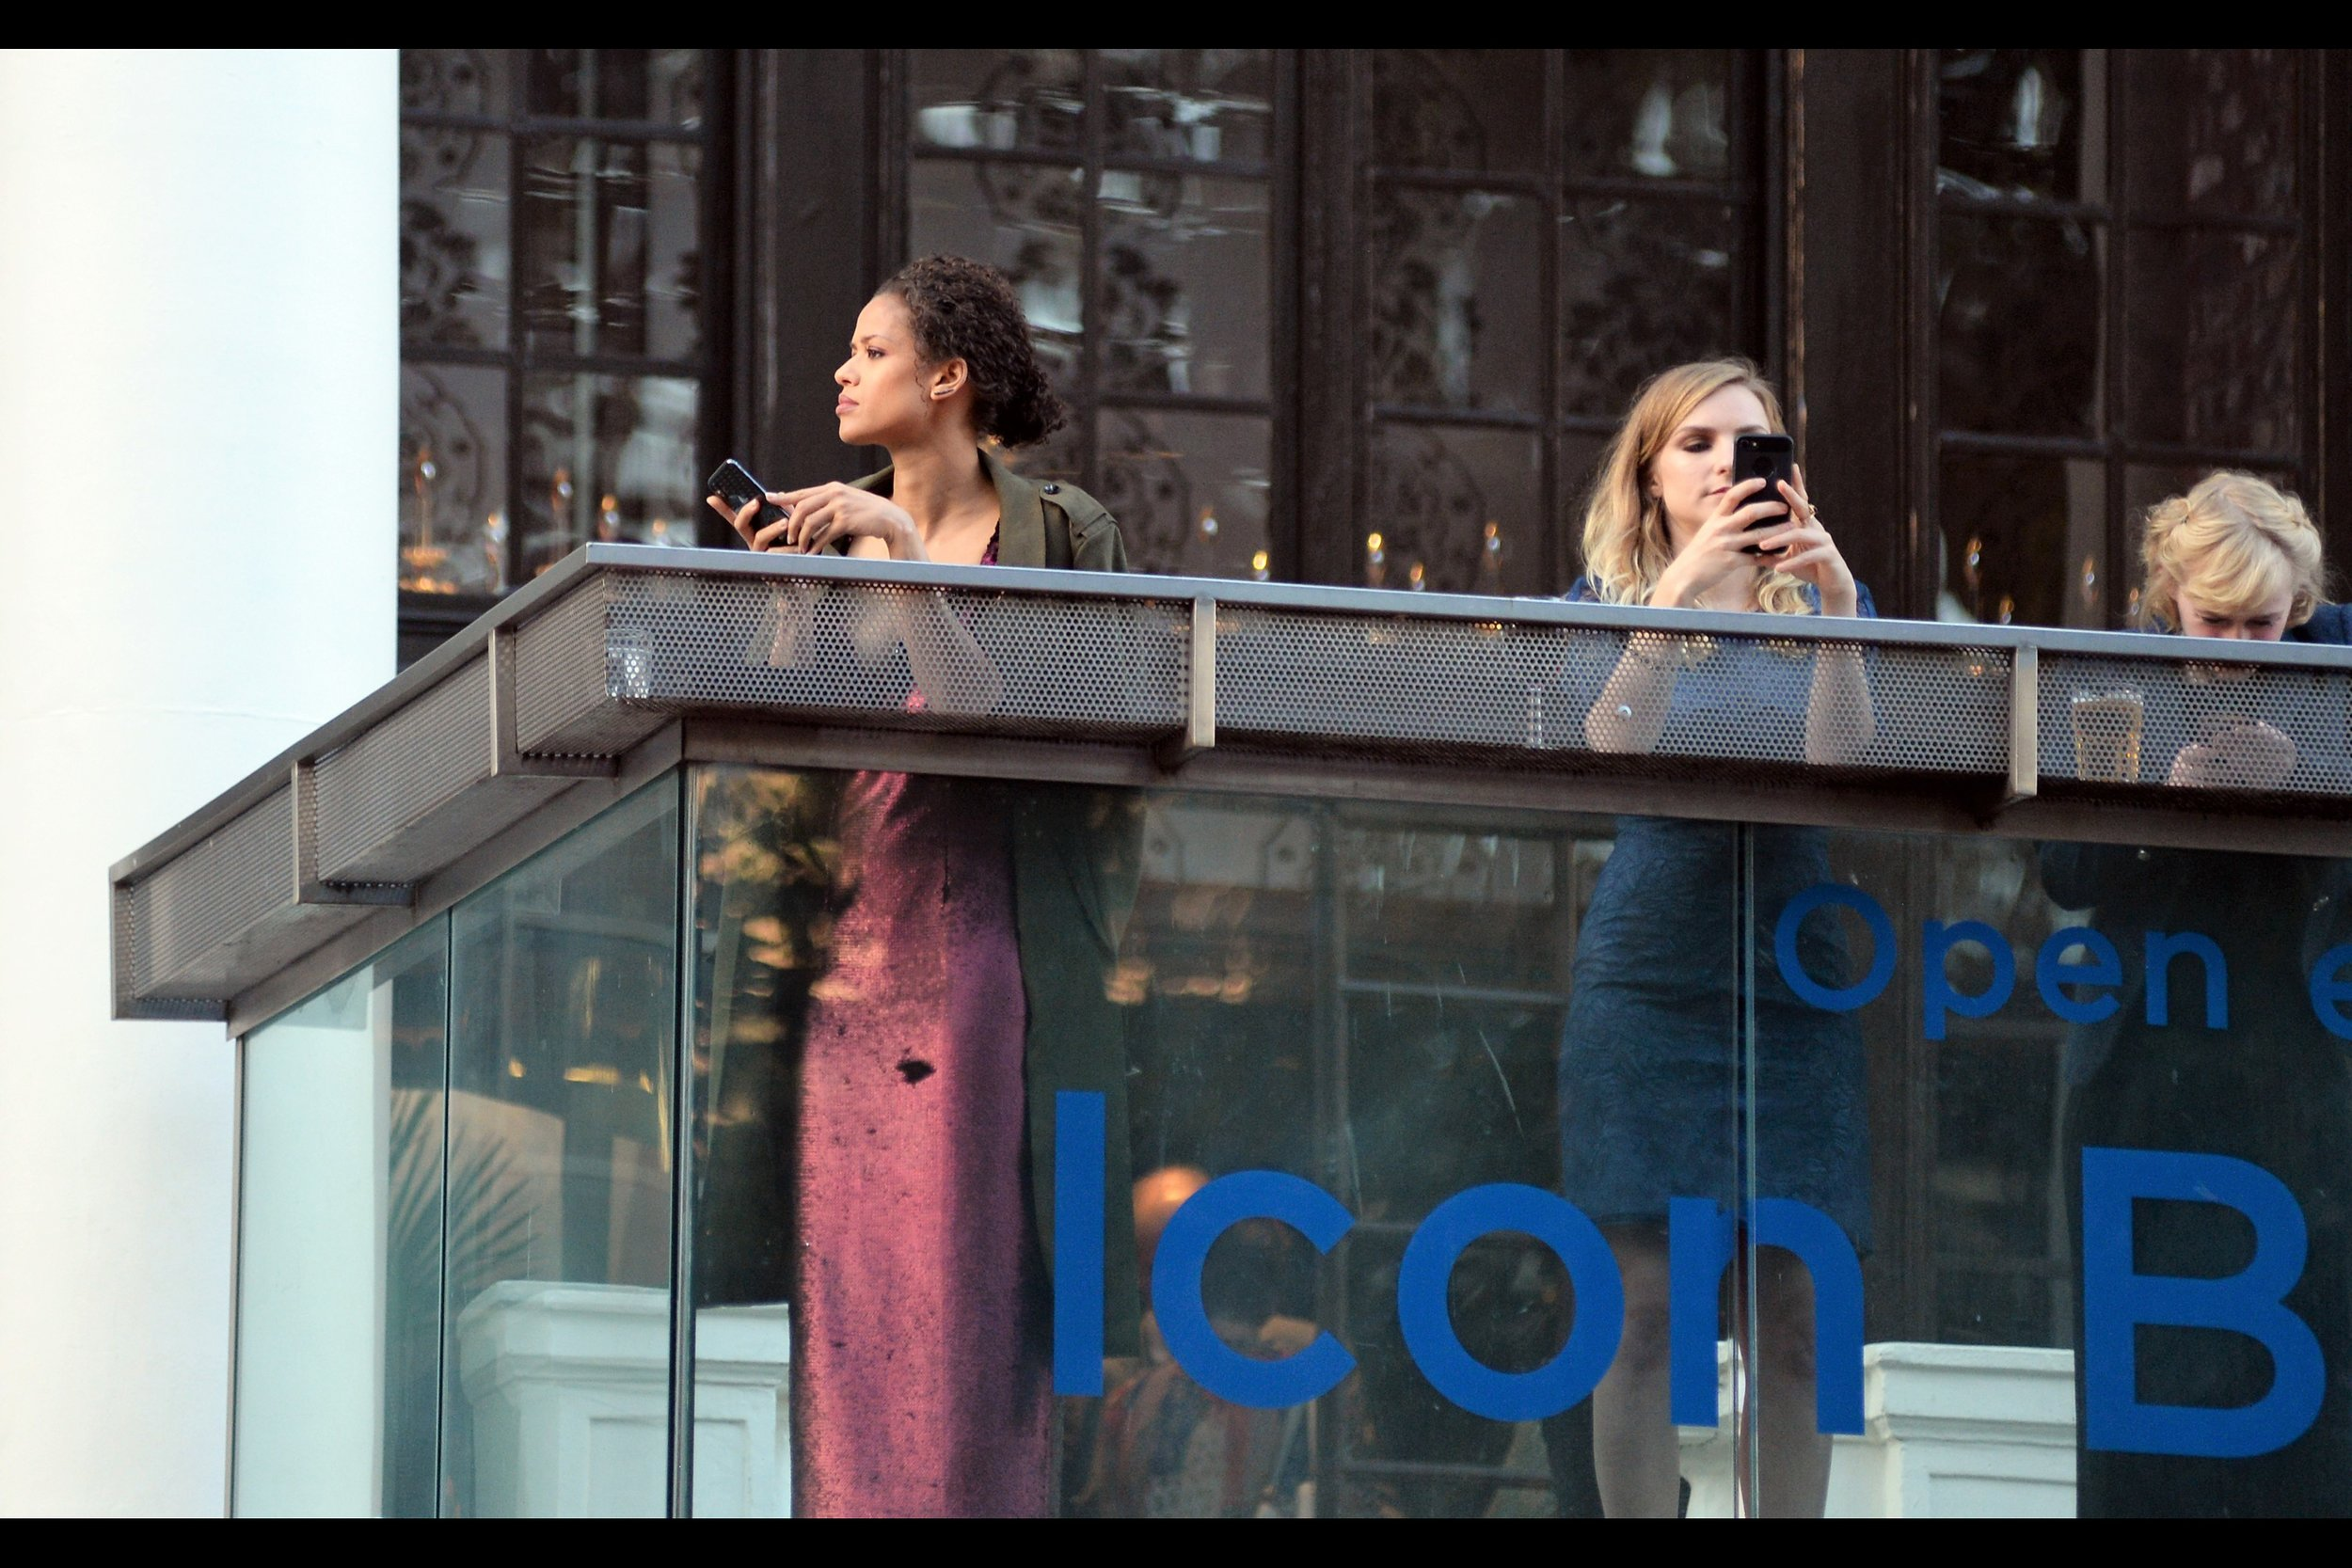 "Meanwhile, back on the balcony … is that actress GUGU MBATHA-RAW?? (checks wireimage… YES!) - she's a great actress : she was excellent the (equally excellent) movie    'Belle""   ."